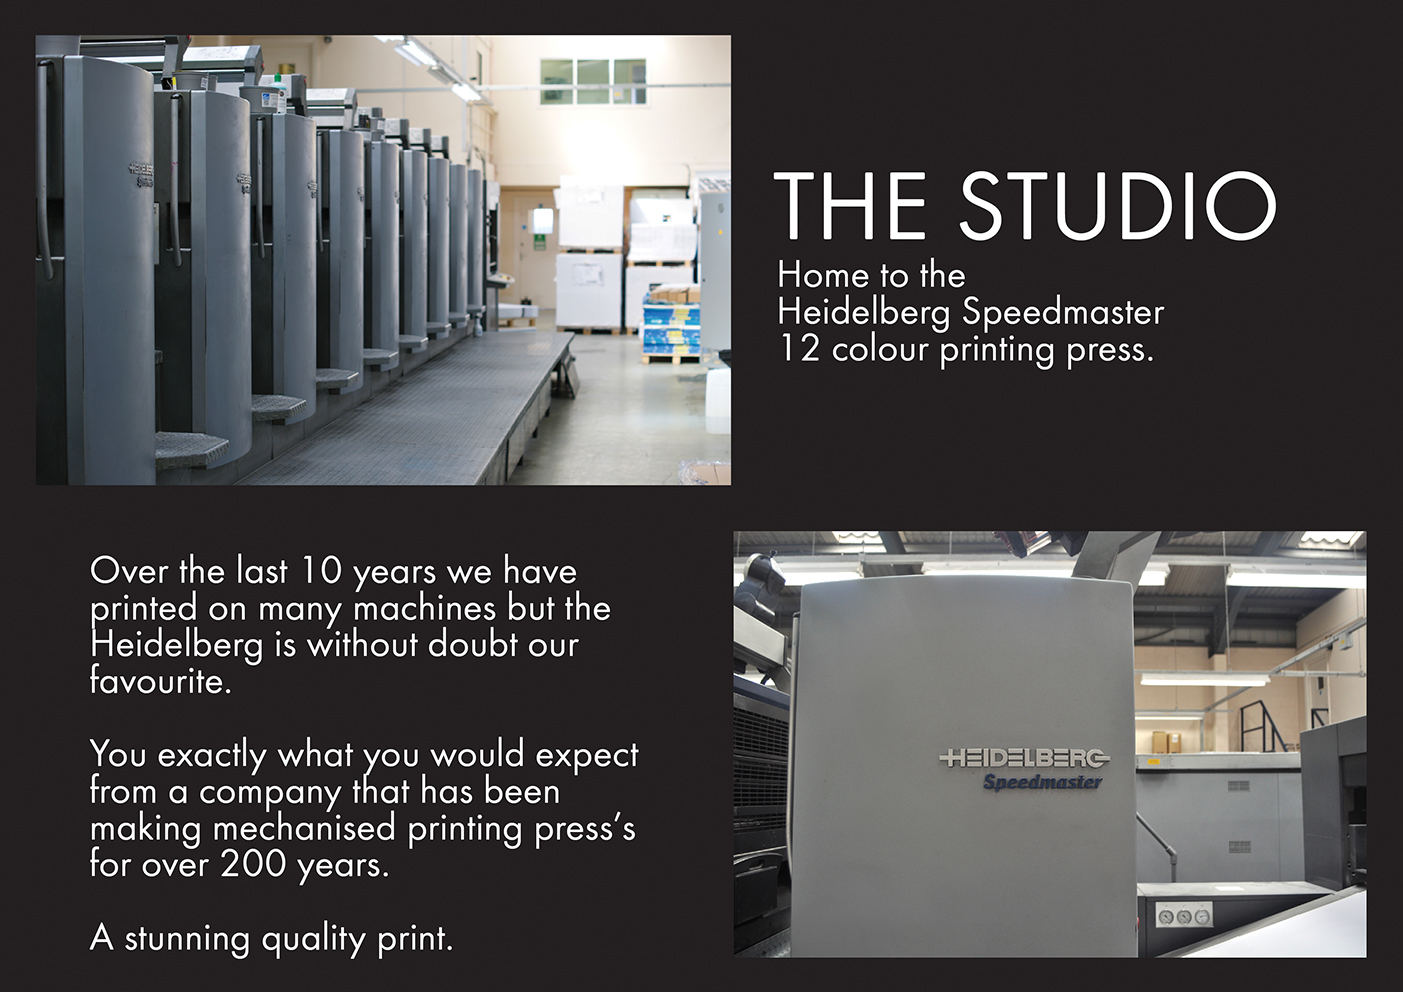 Heidelberg Speedmaster 12 colour printing press